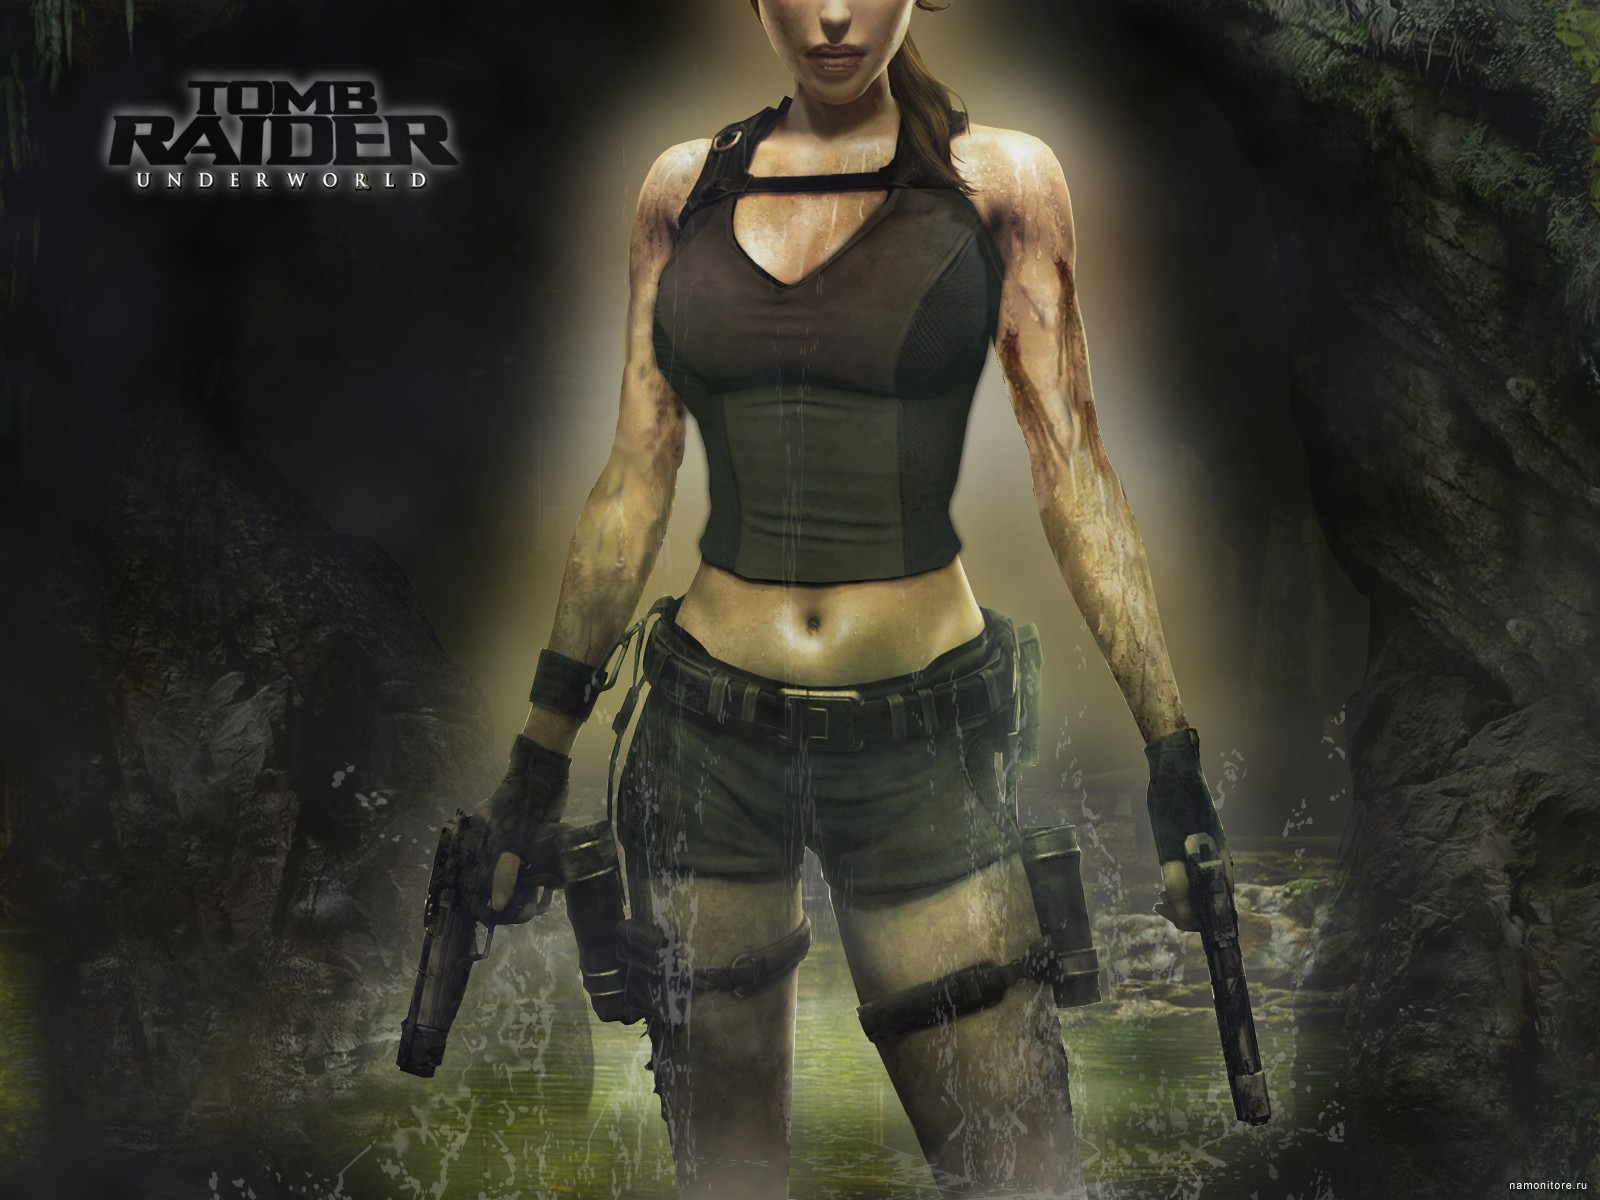 Tomb raider underworld henti pron images